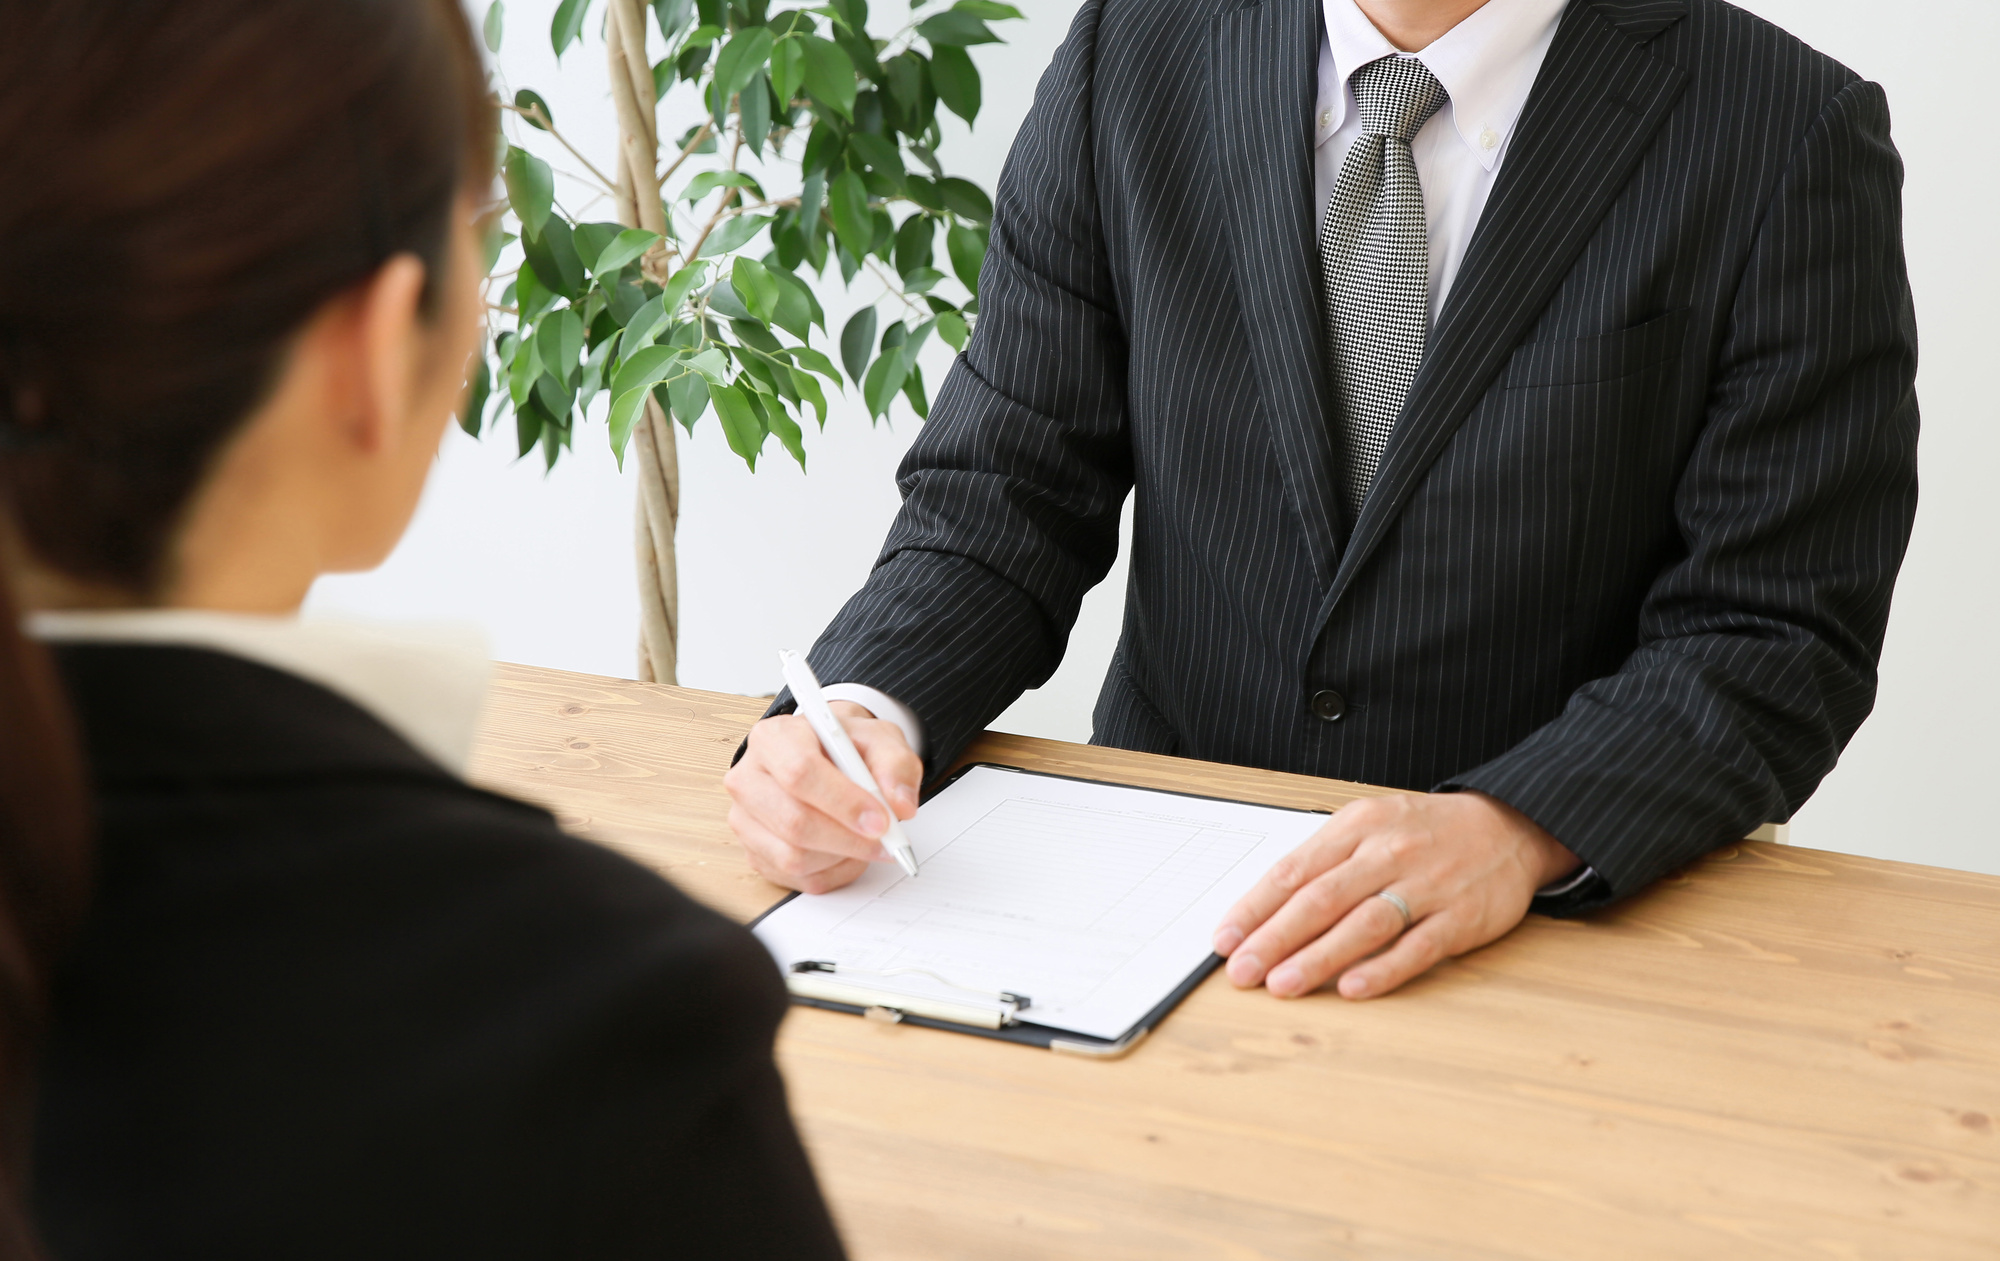 4 IT Interview Questions Hiring Managers Must Ask to Get the Perfect Candidate